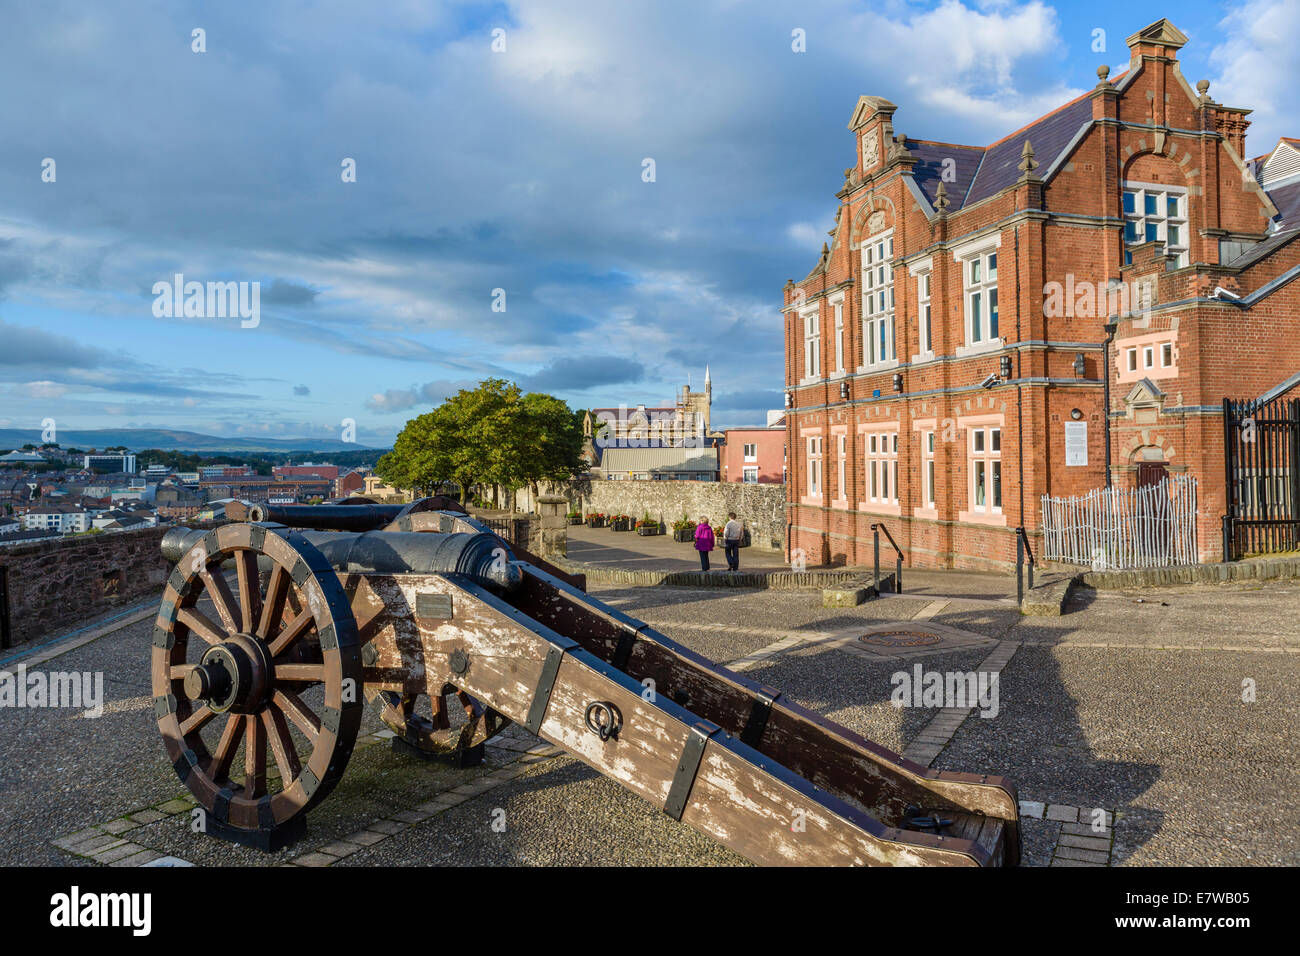 The old city walls from the Royal Bastion in the early evening, Derry, County Londonderry, Northern Ireland, UK Stock Photo